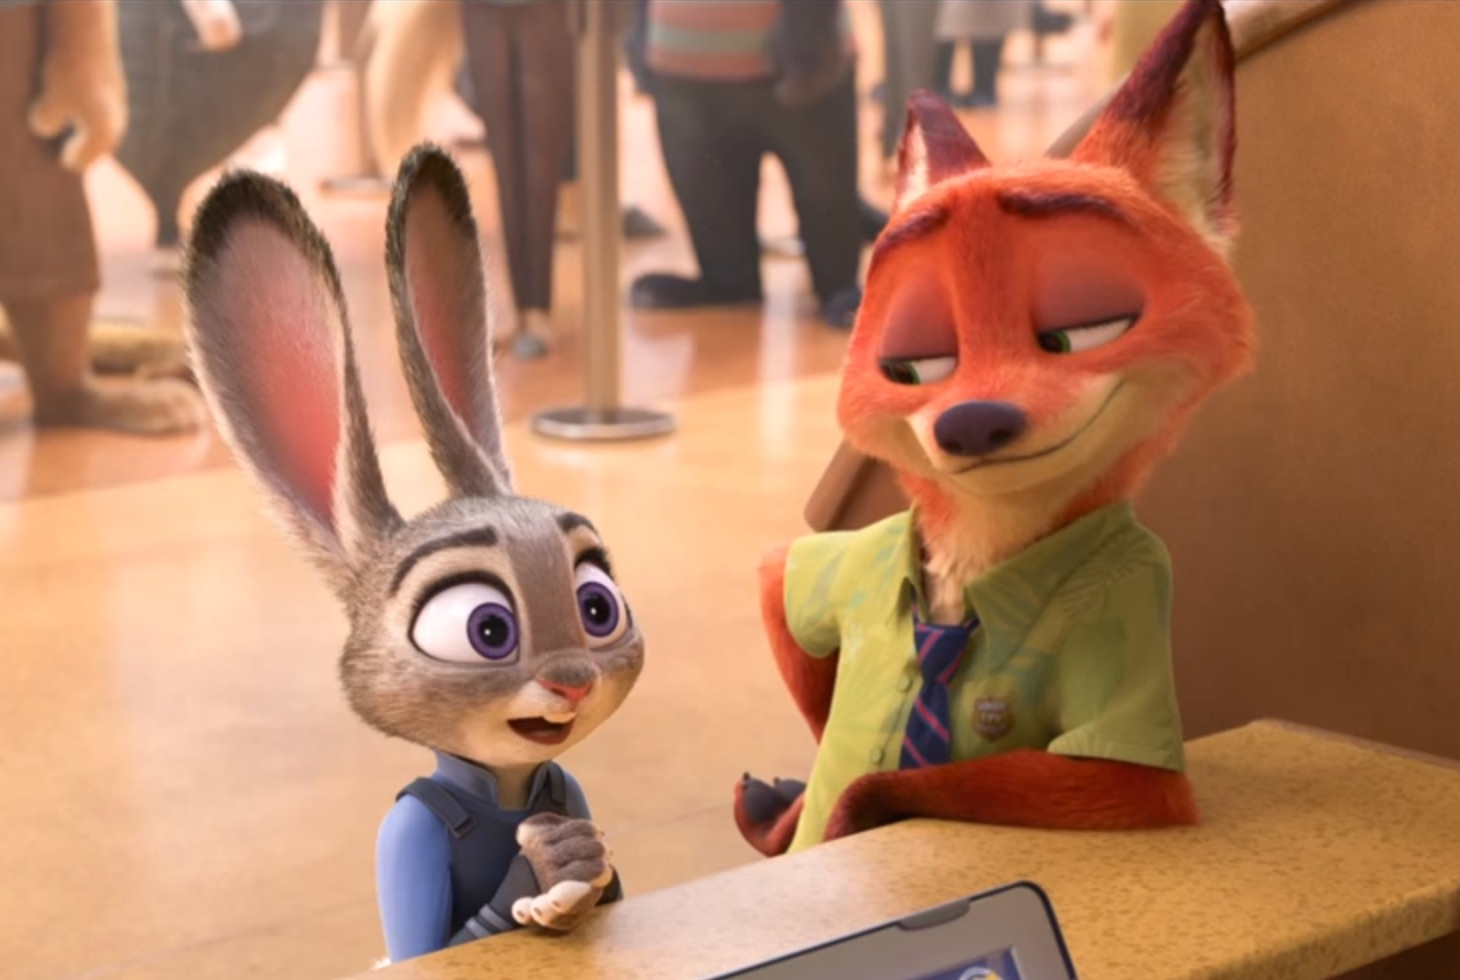 Disney just released the first trailer for 'Zootopia' and we're already in love